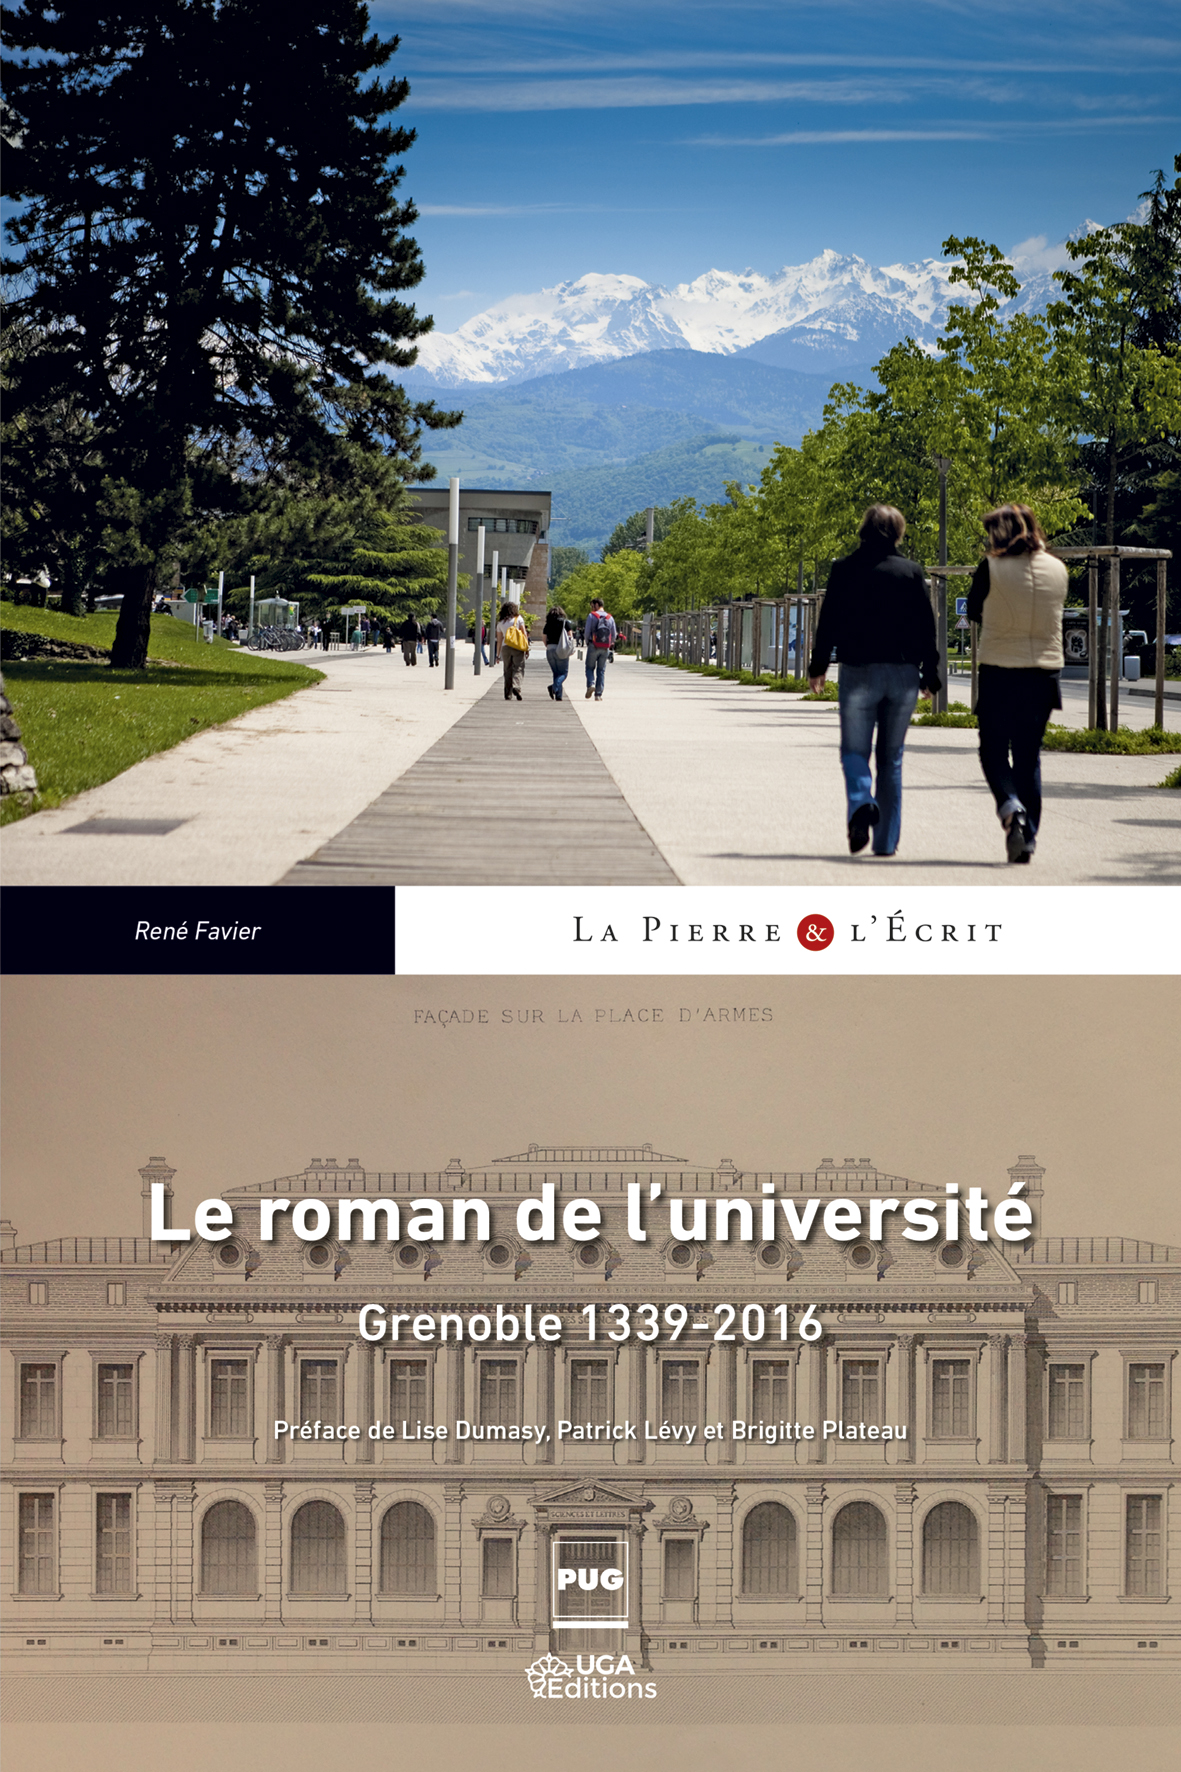 le roman de l u0026 39 universit u00e9 - grenoble 1339-2016